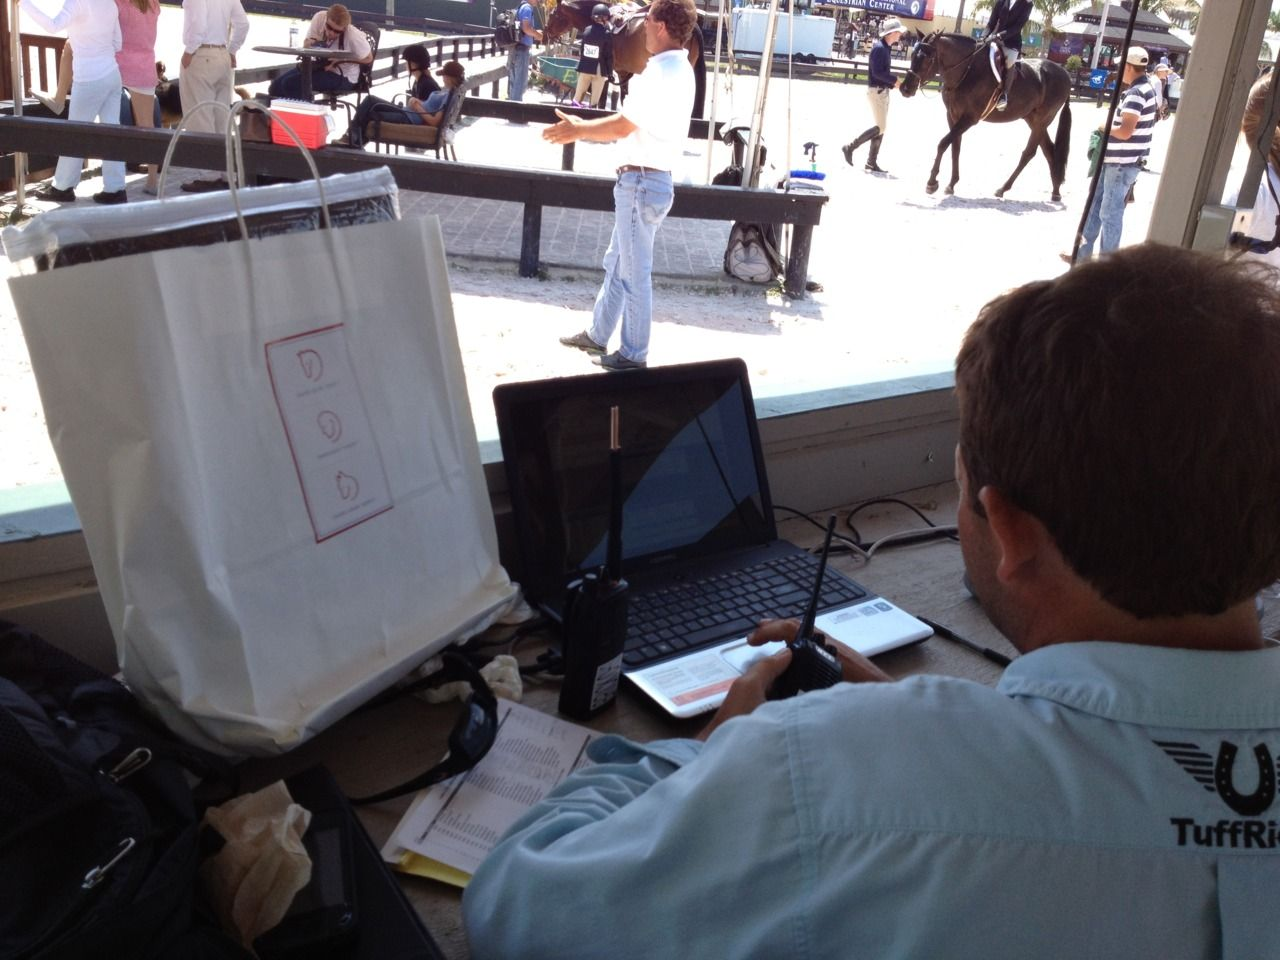 The always smiling and good-natured, Rob McGregor, a ring steward at WEF, is pictured here with his winning attitude, scoring the Draper Therapies Best Foot Forward Award during the 2012 Winter Equestrian Festival in Wellington, FL.